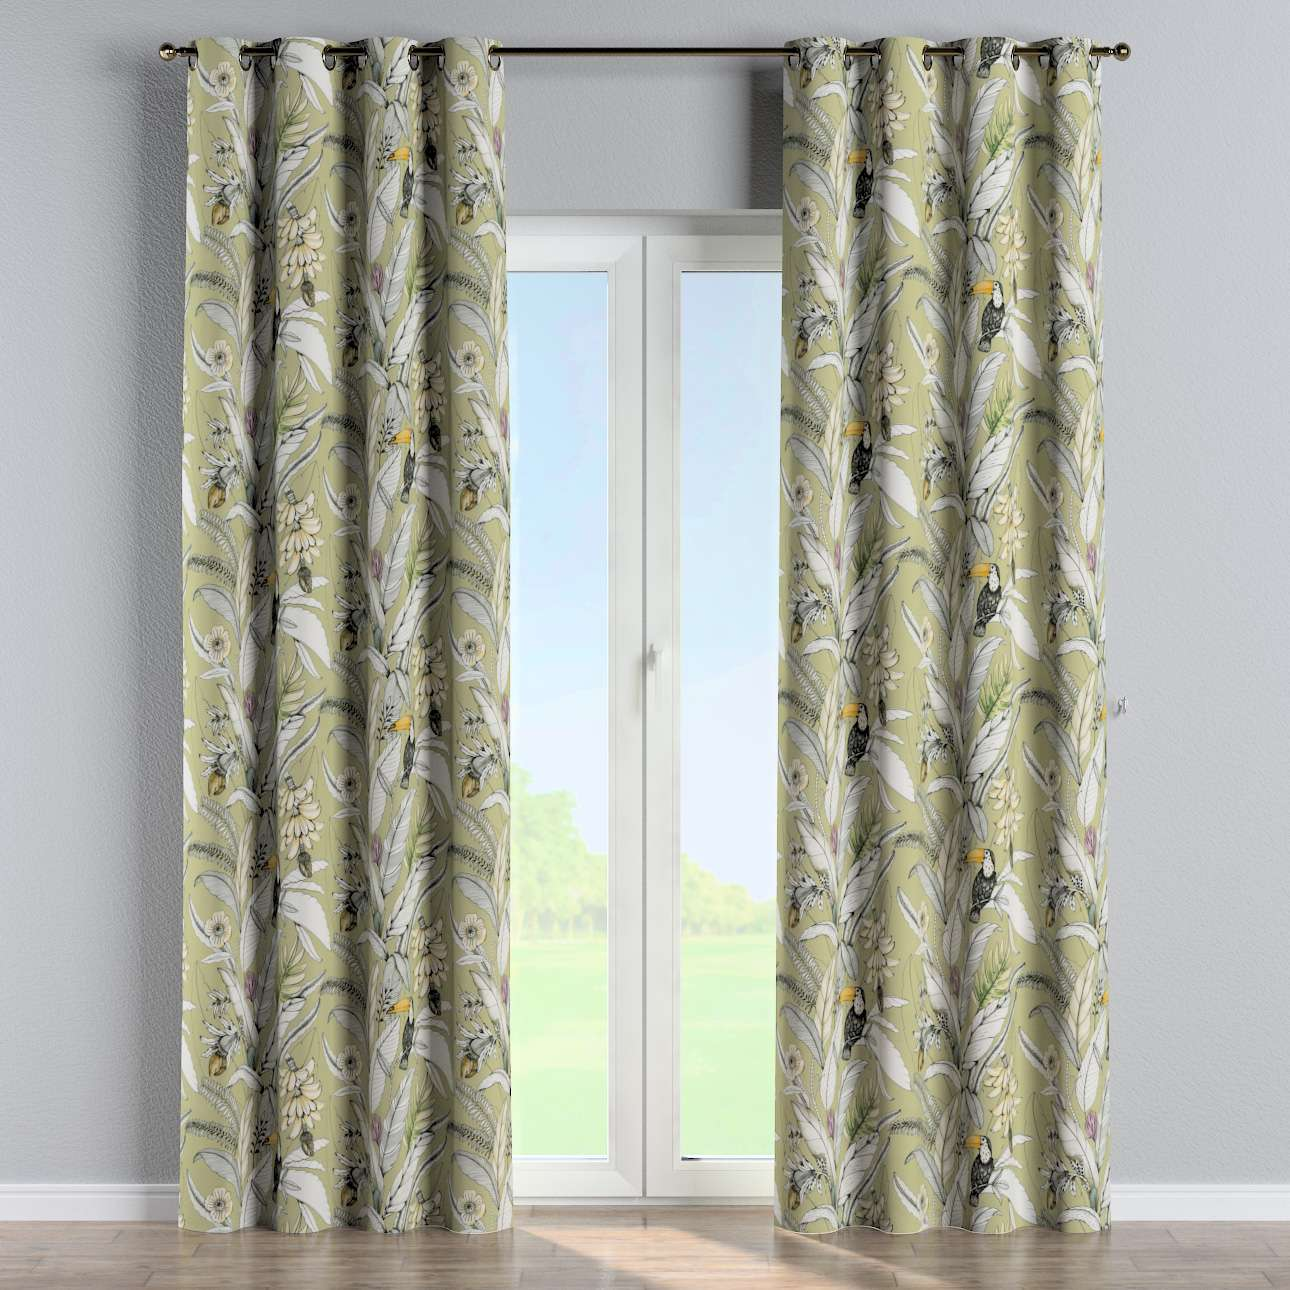 Eyelet curtains in collection Tropical Island, fabric: 142-65